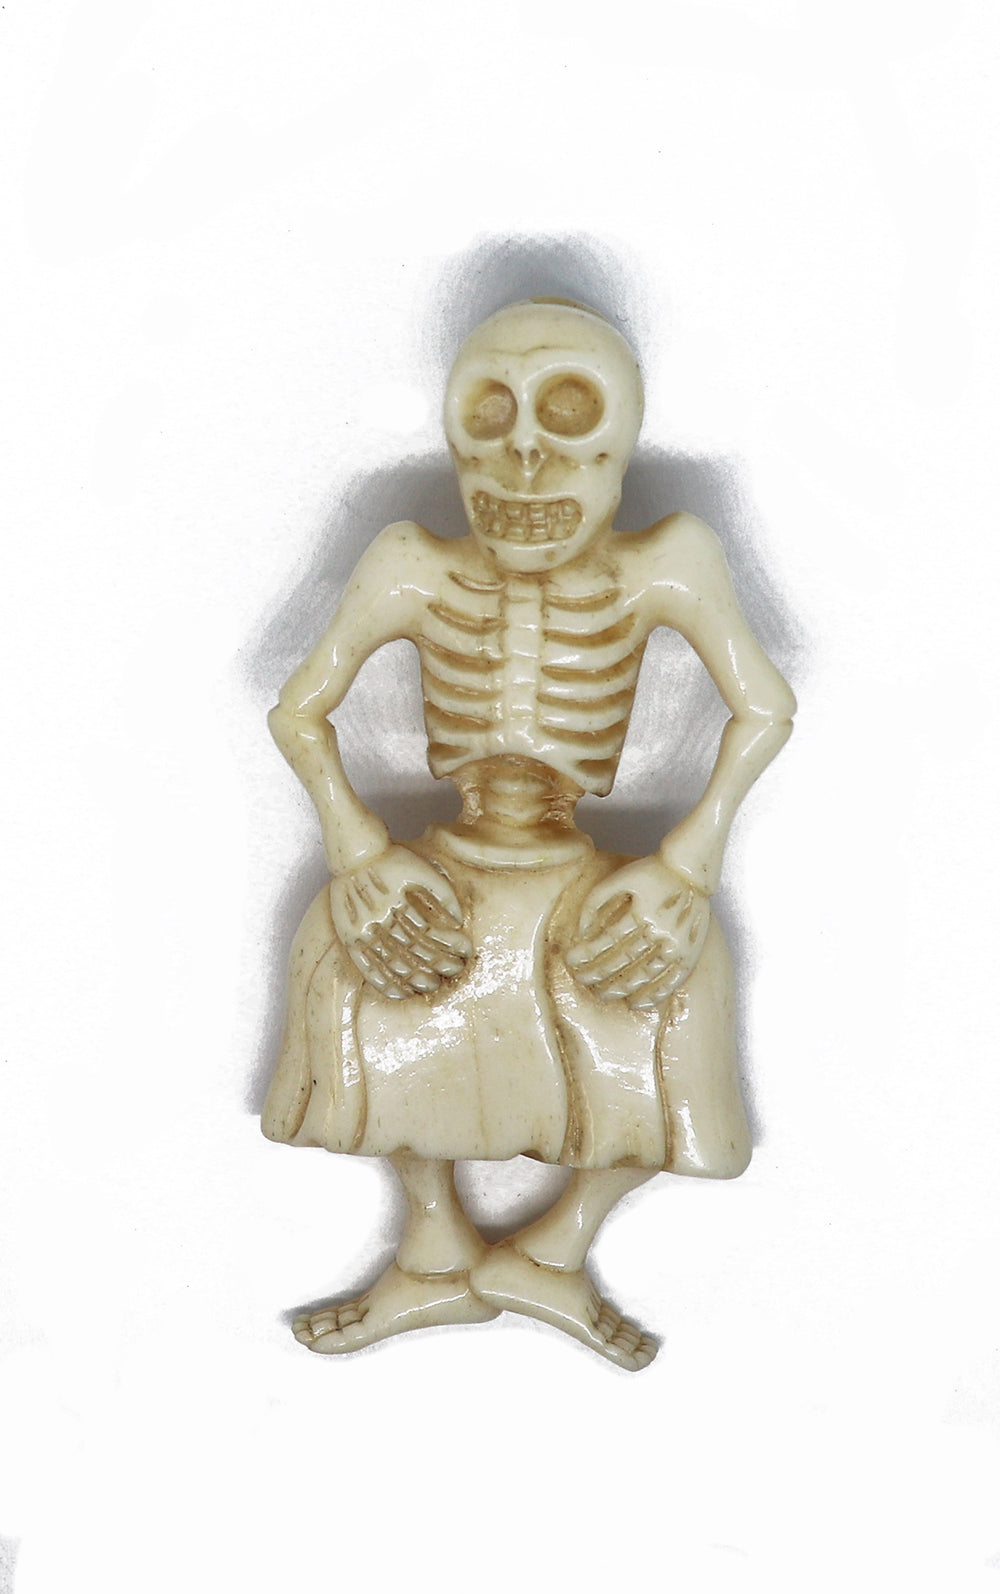 Vintage ivory dancing skeleton